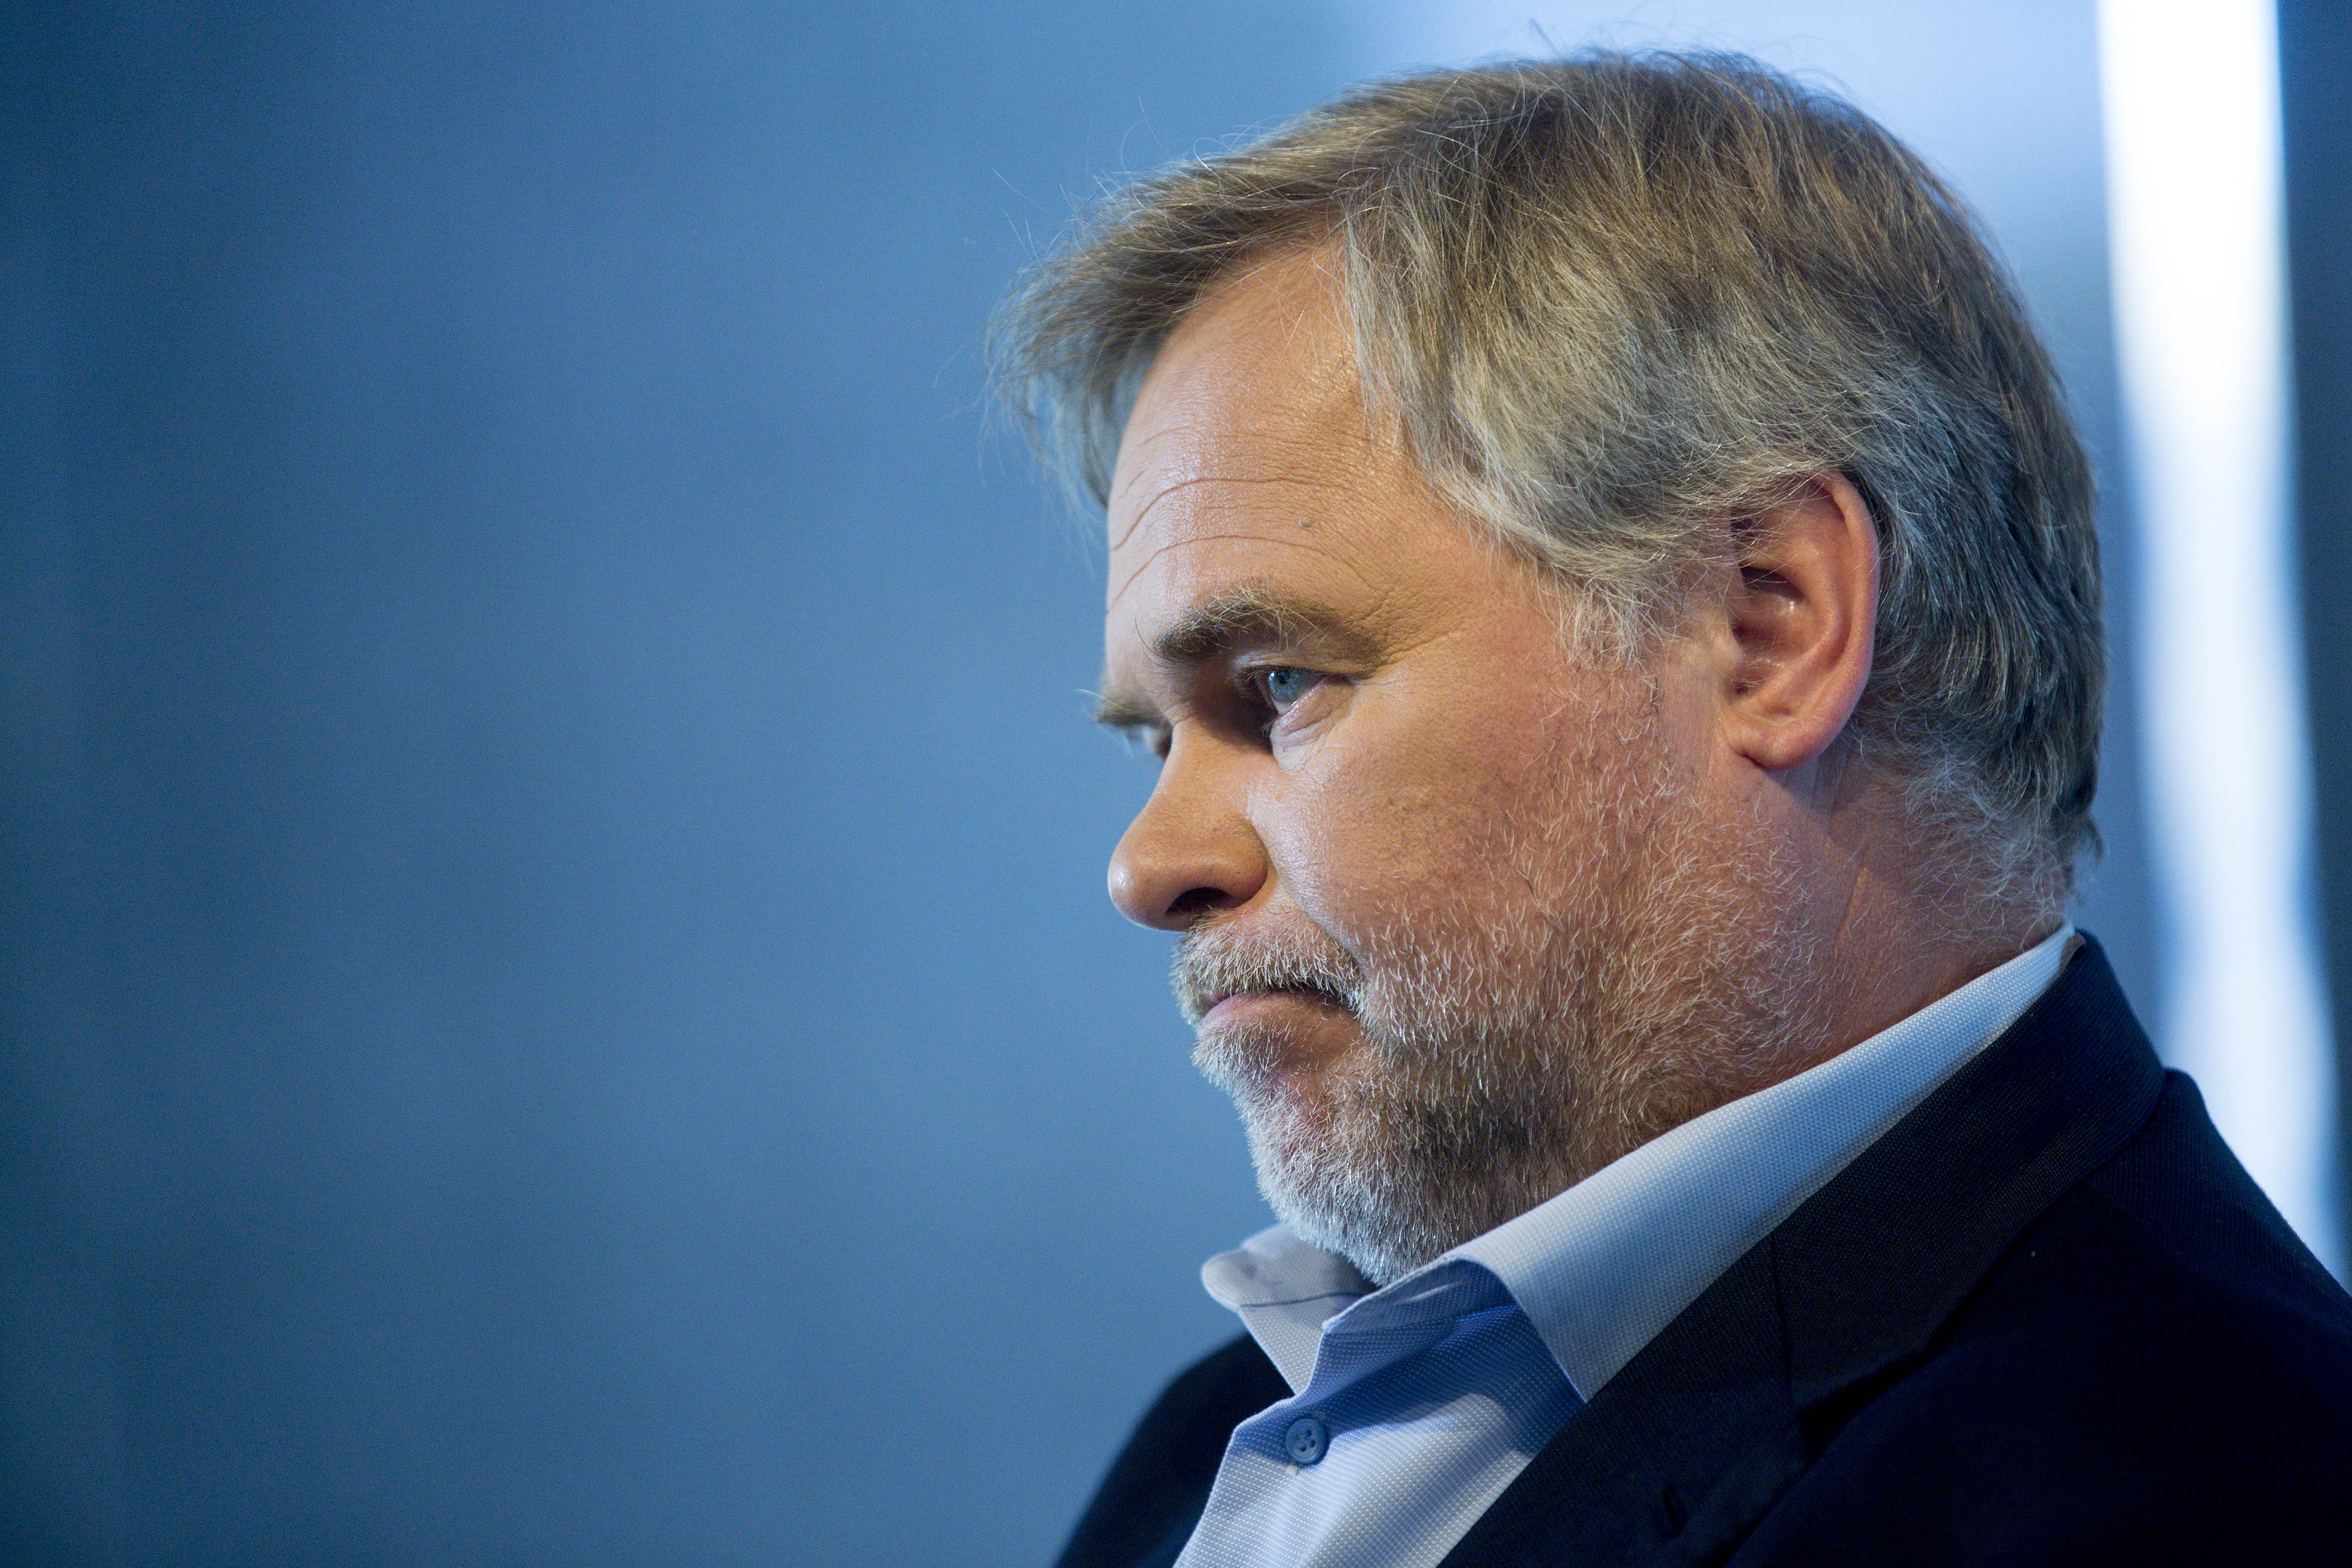 Kaspersky Lab Chief Executive Officer Interview And Portraits